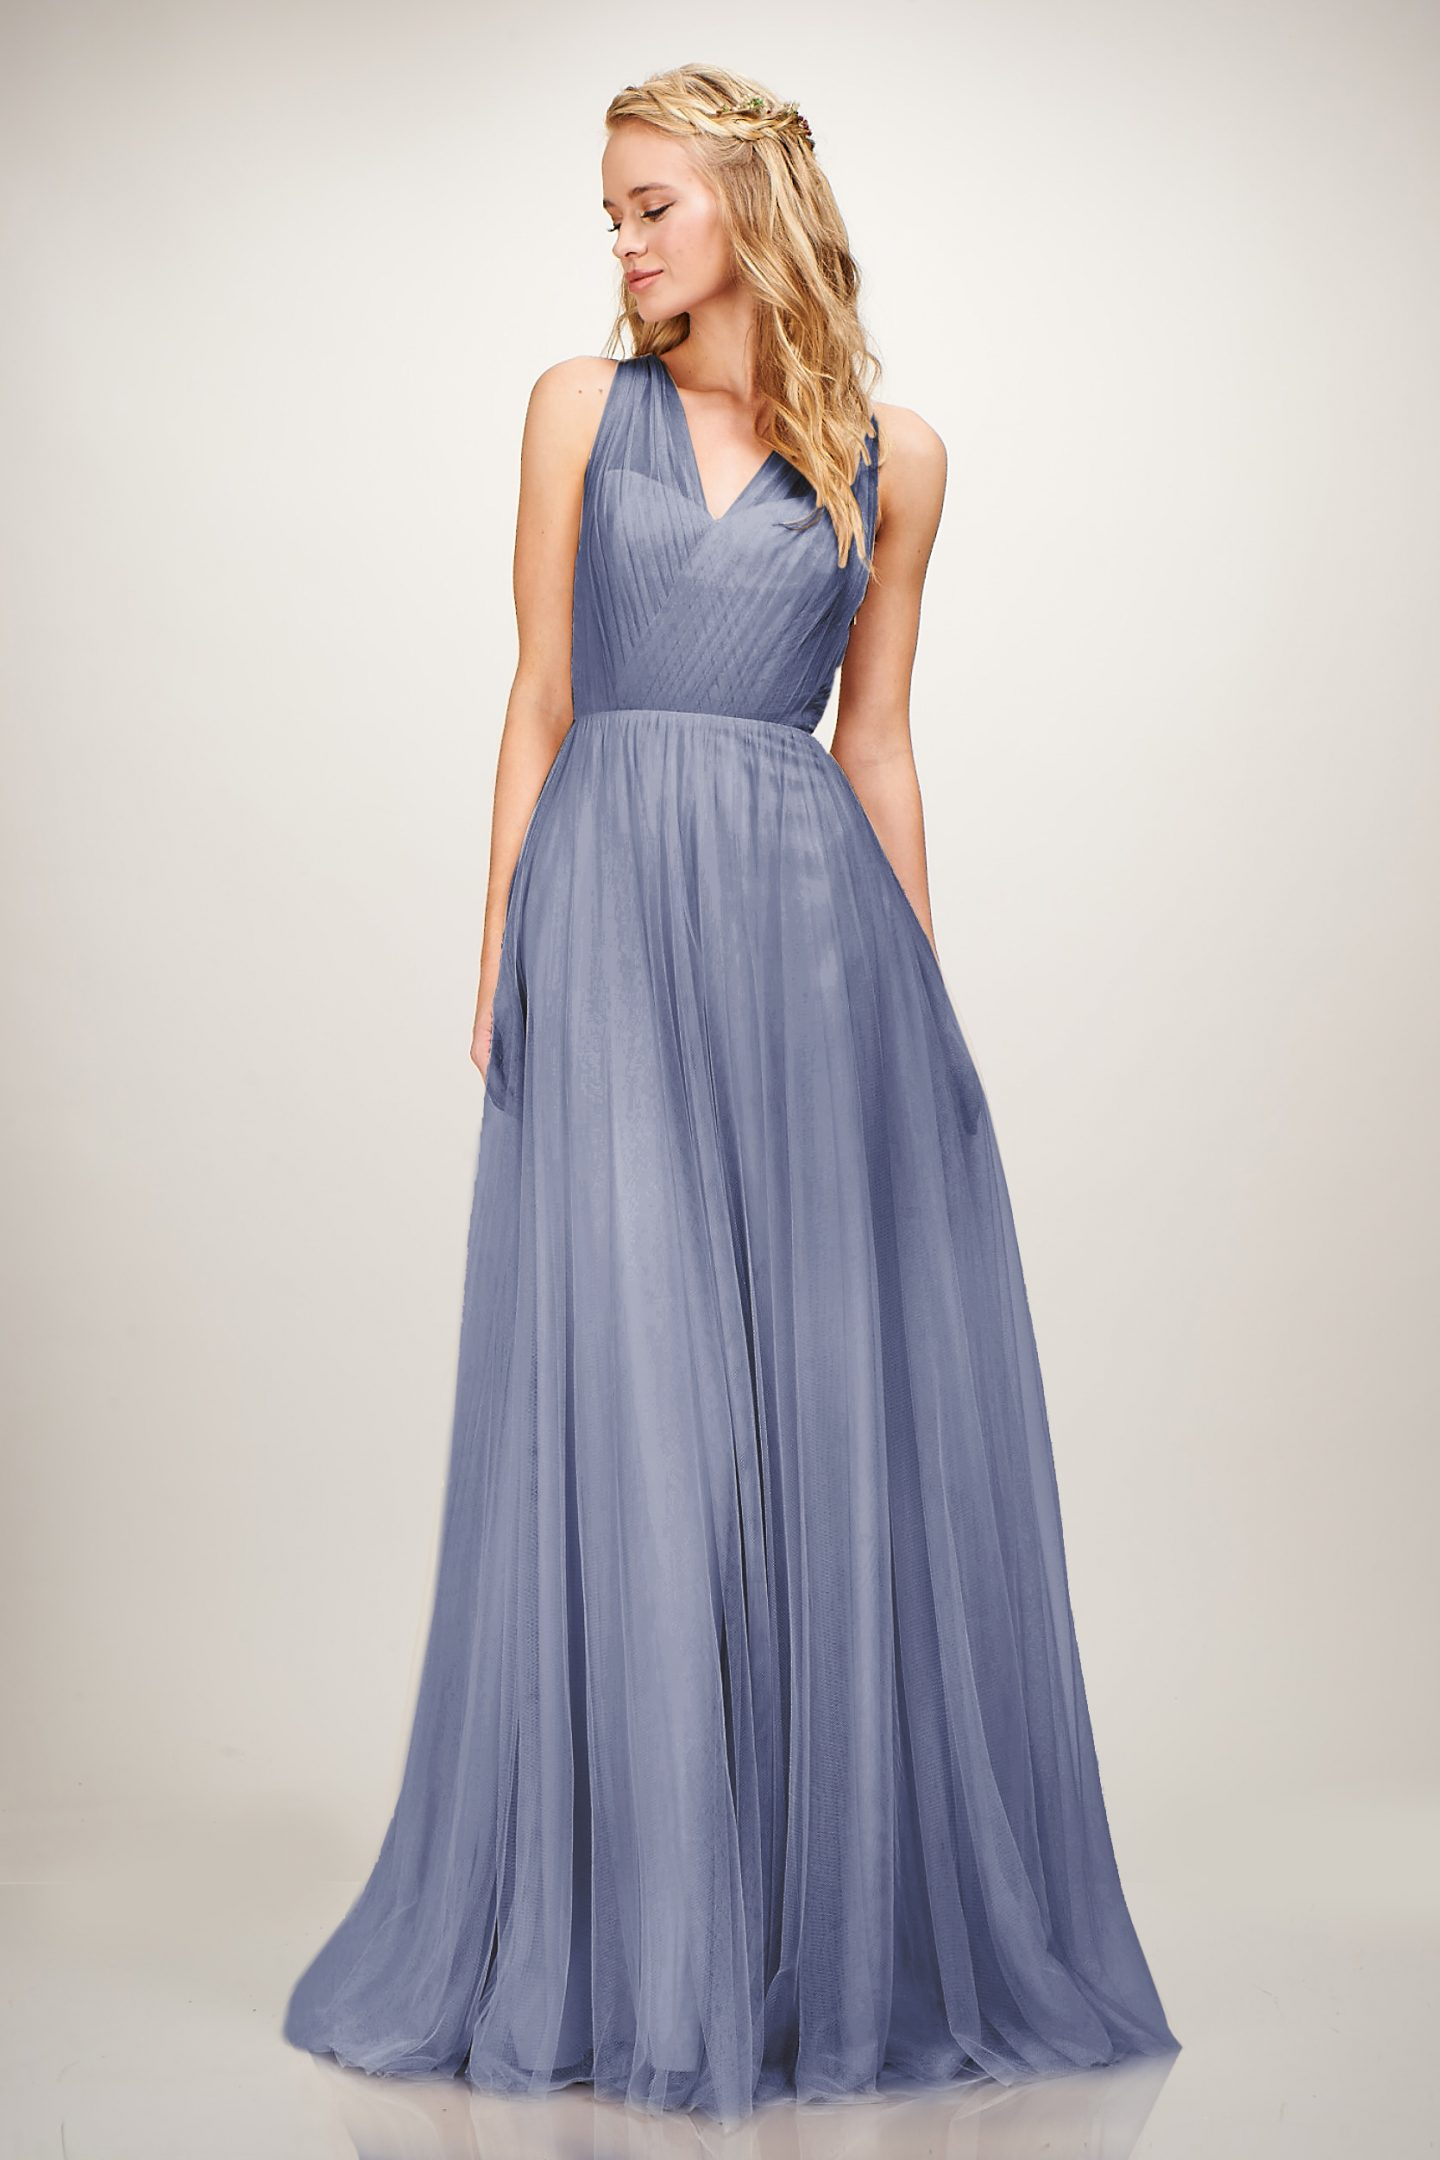 Magnolia Bridal Bridesmaid Dresses 4.jpg